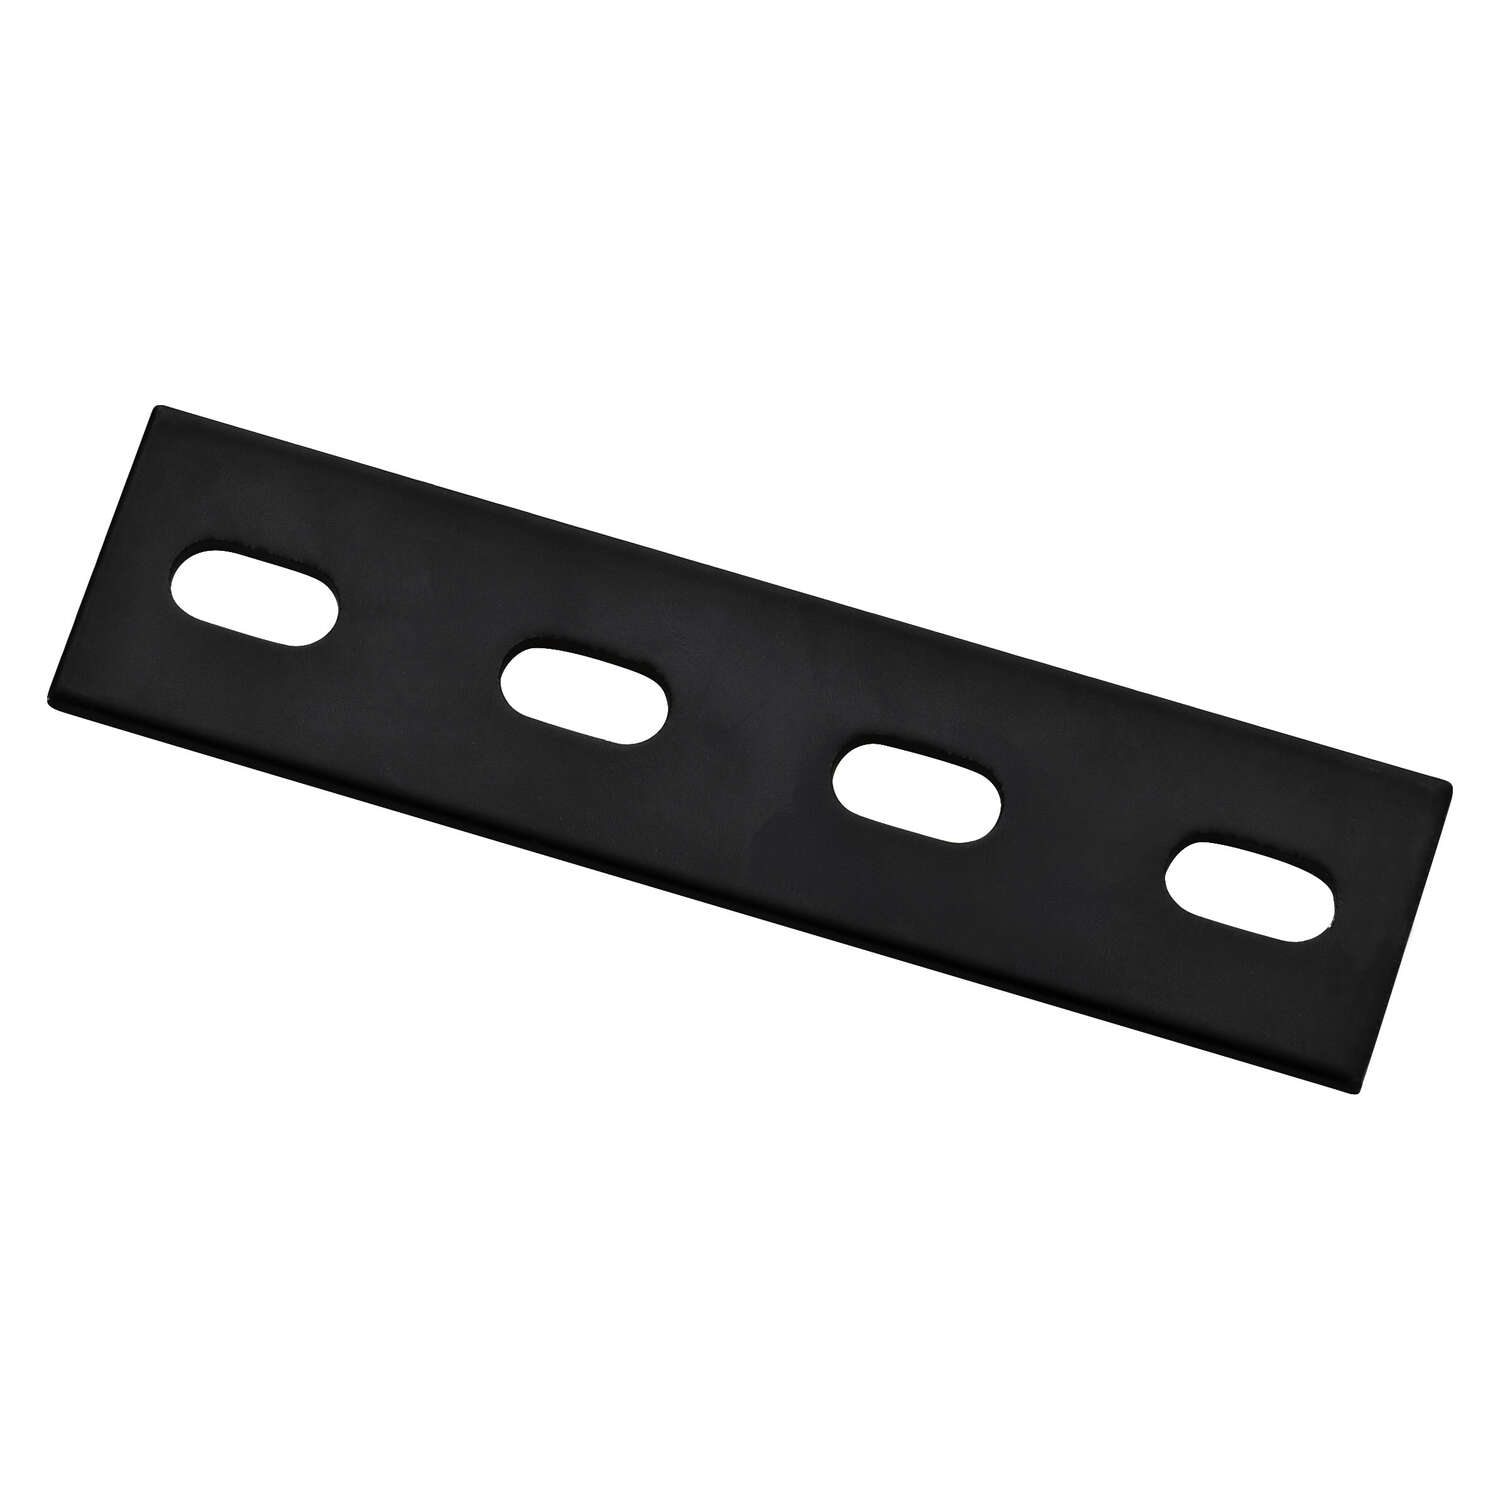 National Hardware 6 in. H x 1.5 in. W x 0.125 in. D Black Carbon Steel Flat Mending Plate